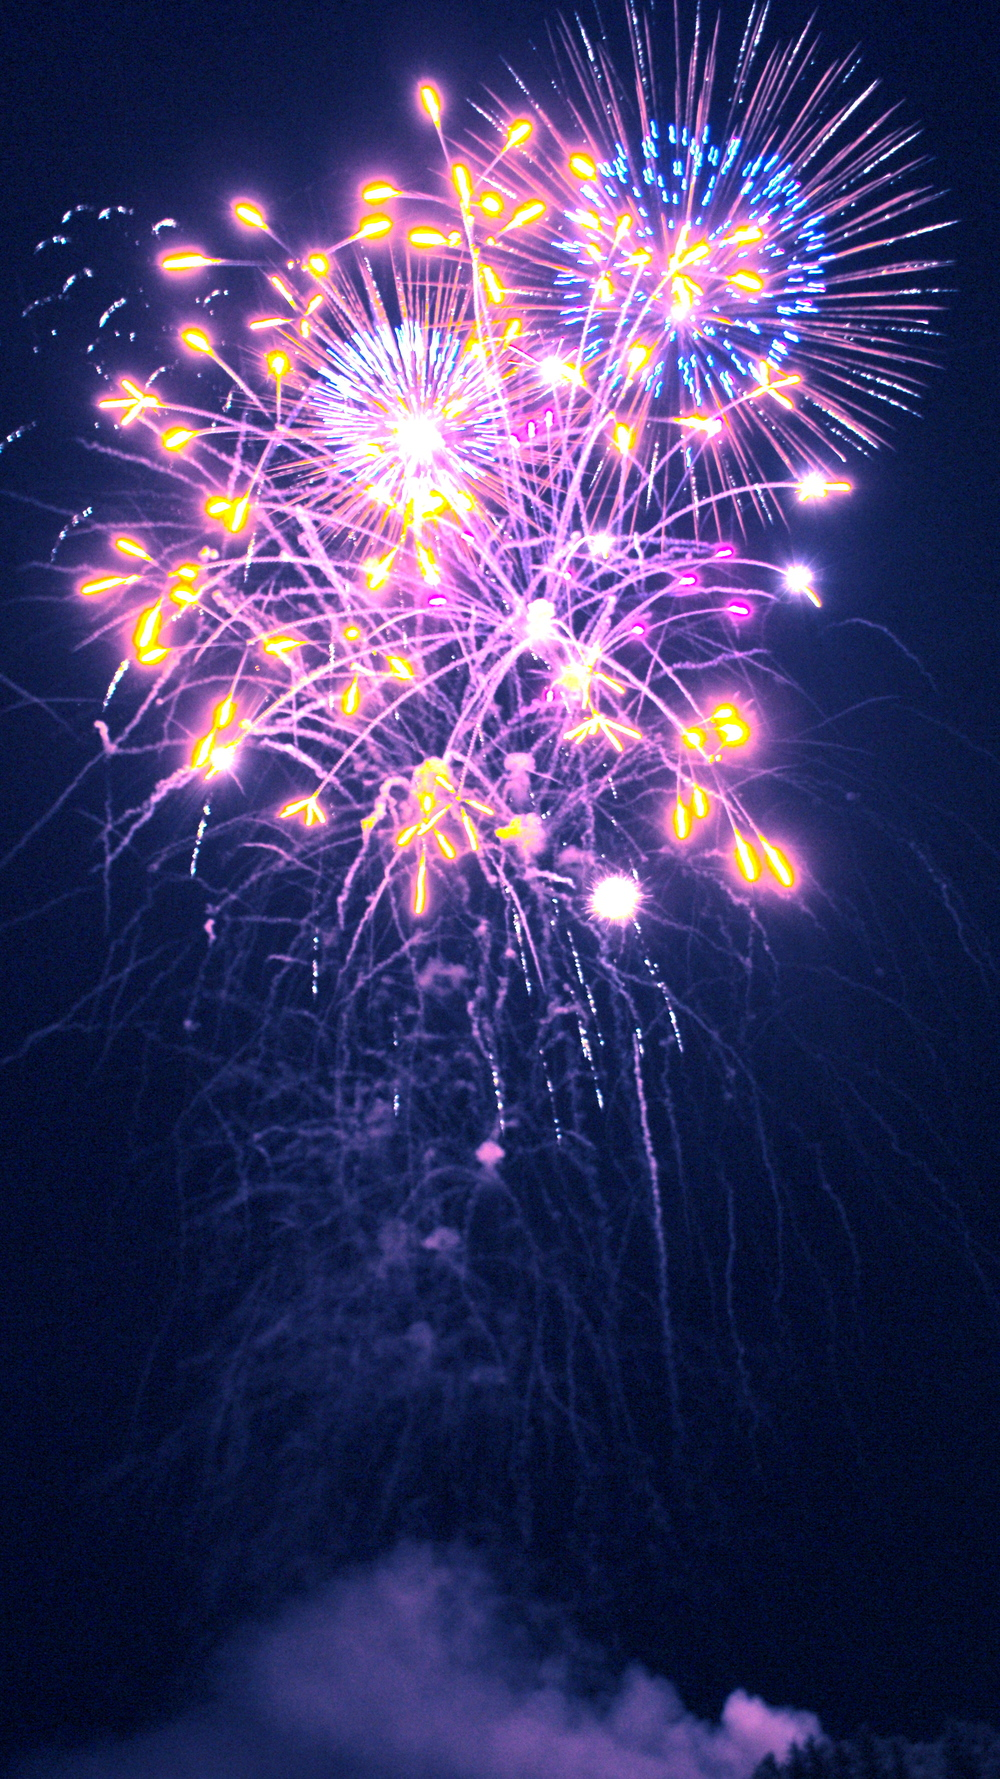 Fireworks in Kenora, Ontario, Canada Day 2012